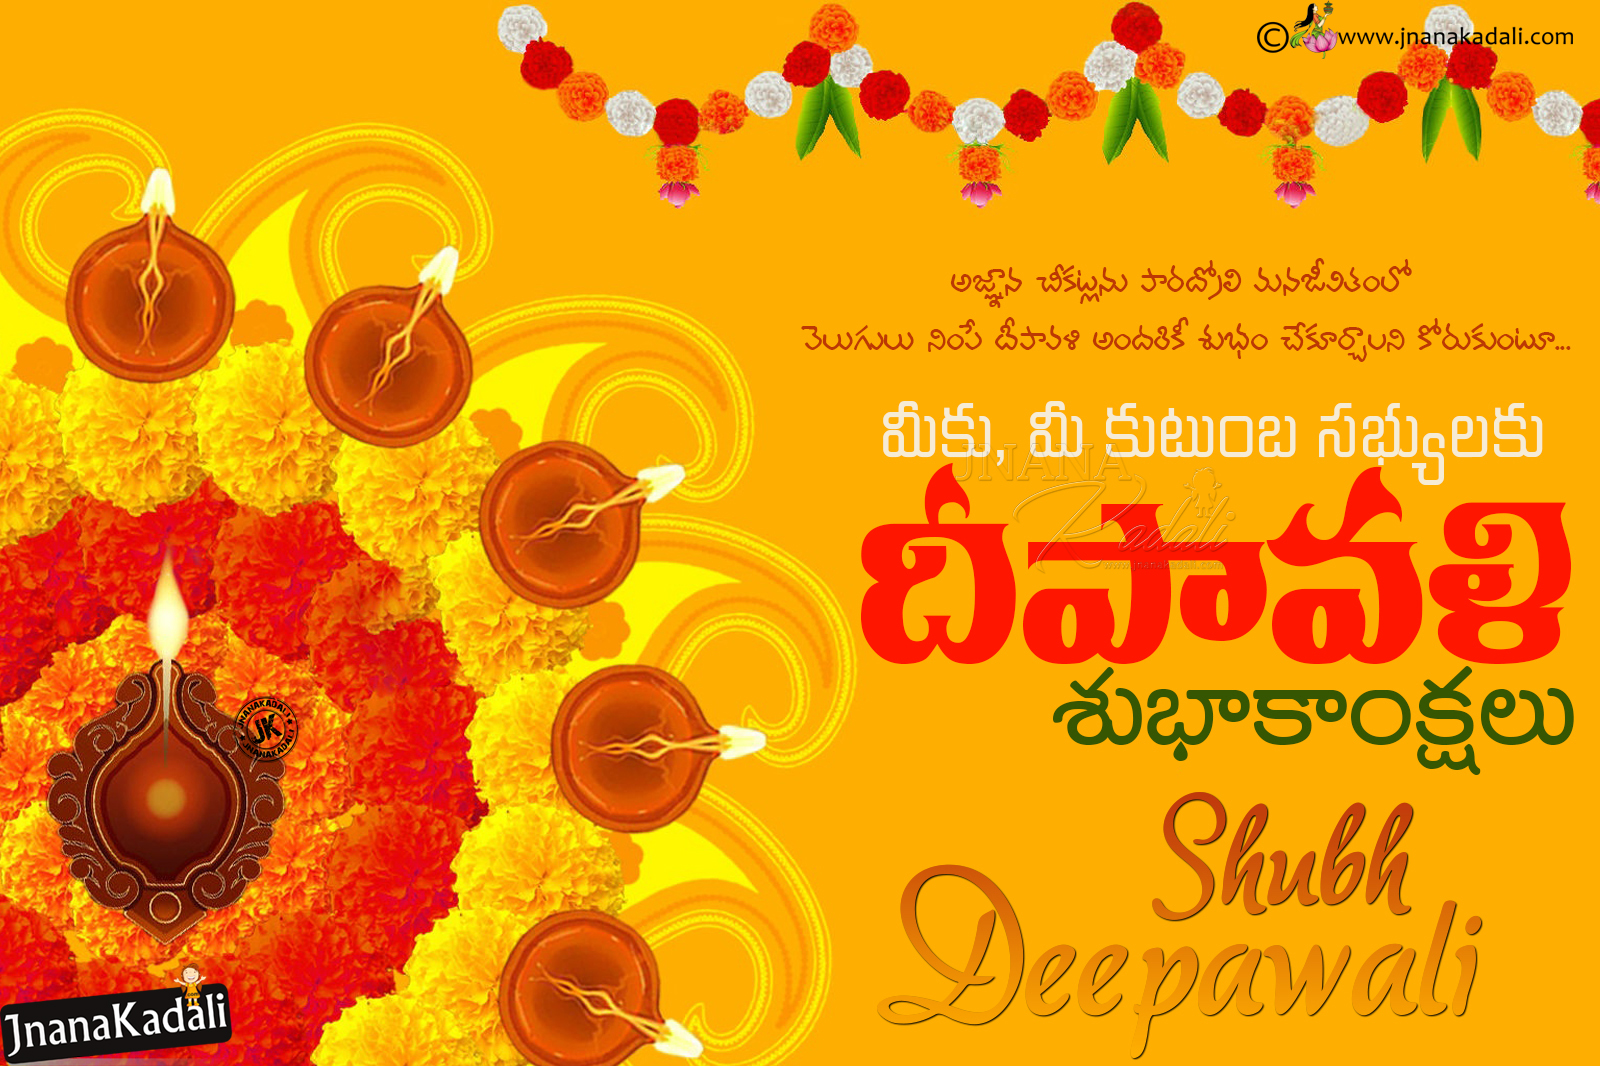 essay on deepavali in telugu Diwali (also spelled devali in certain regions) or deepavali,[1] popularly known as the festival of lights, is an important five-day festival in hinduism,jainism, and sikhism, occurring between mid-october and mid-november.